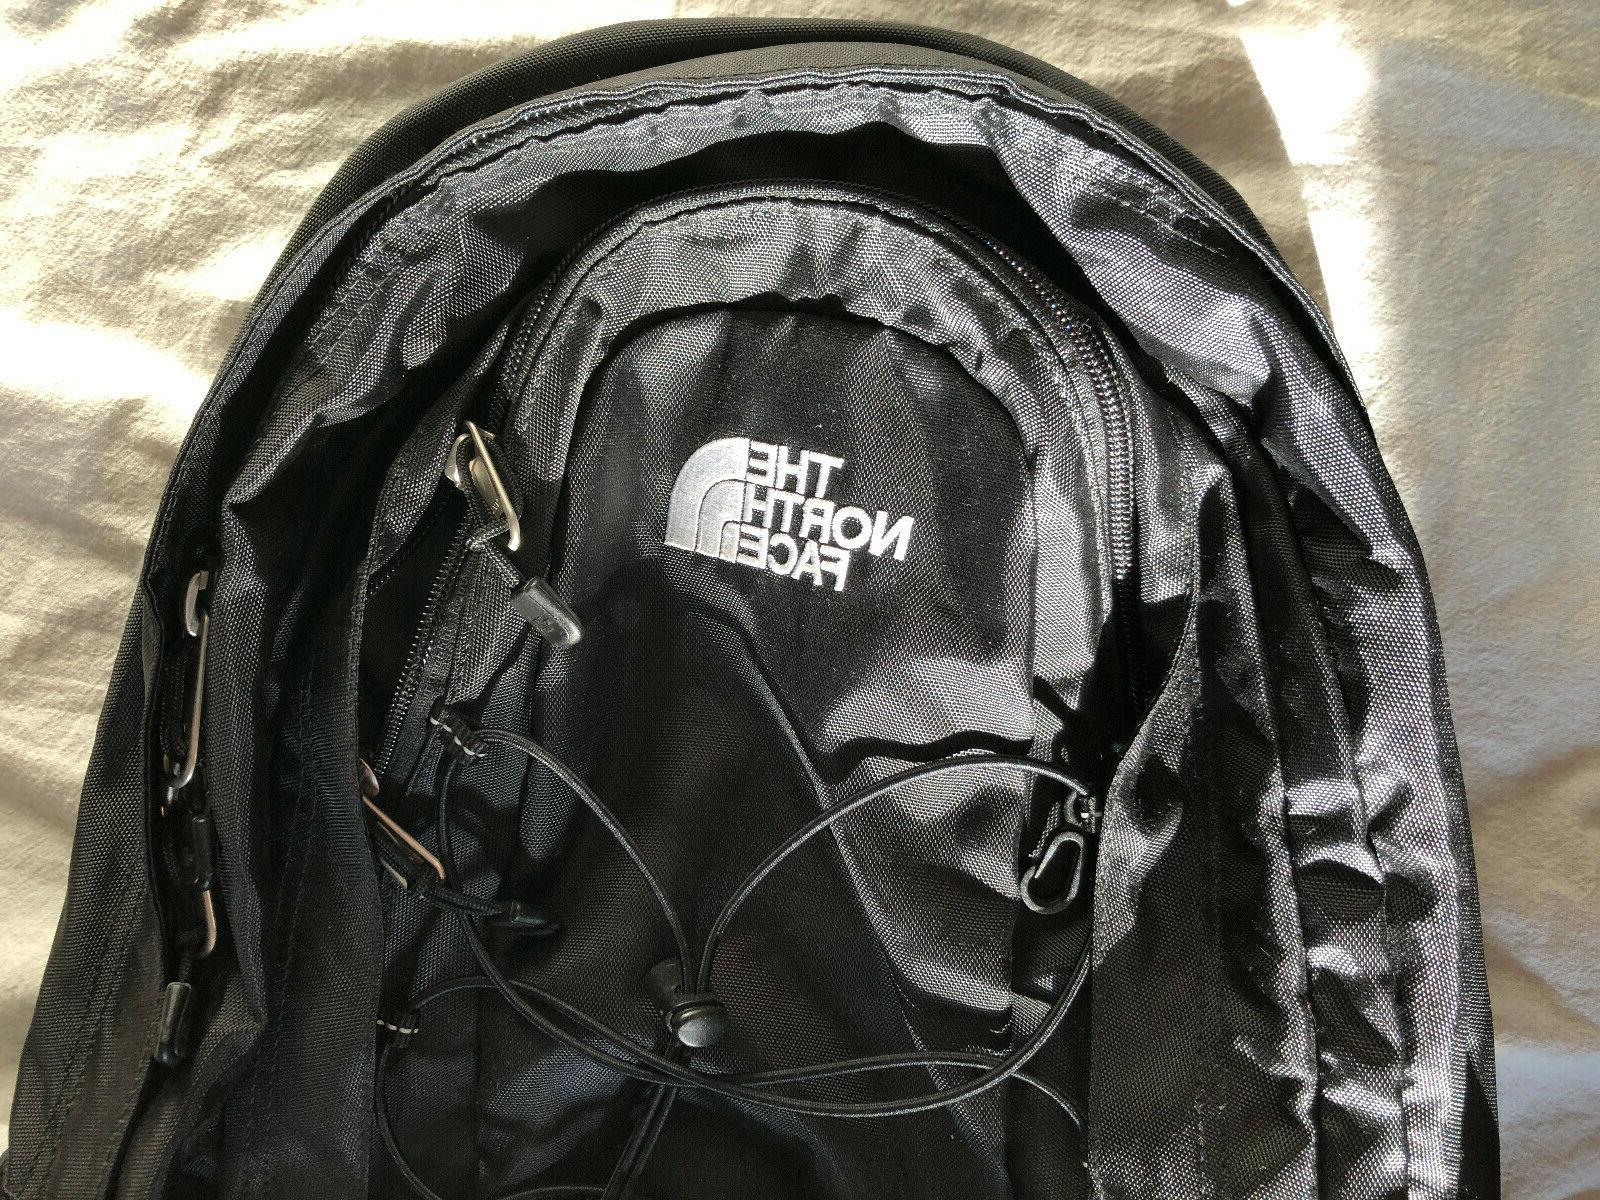 The North Backpack - Not